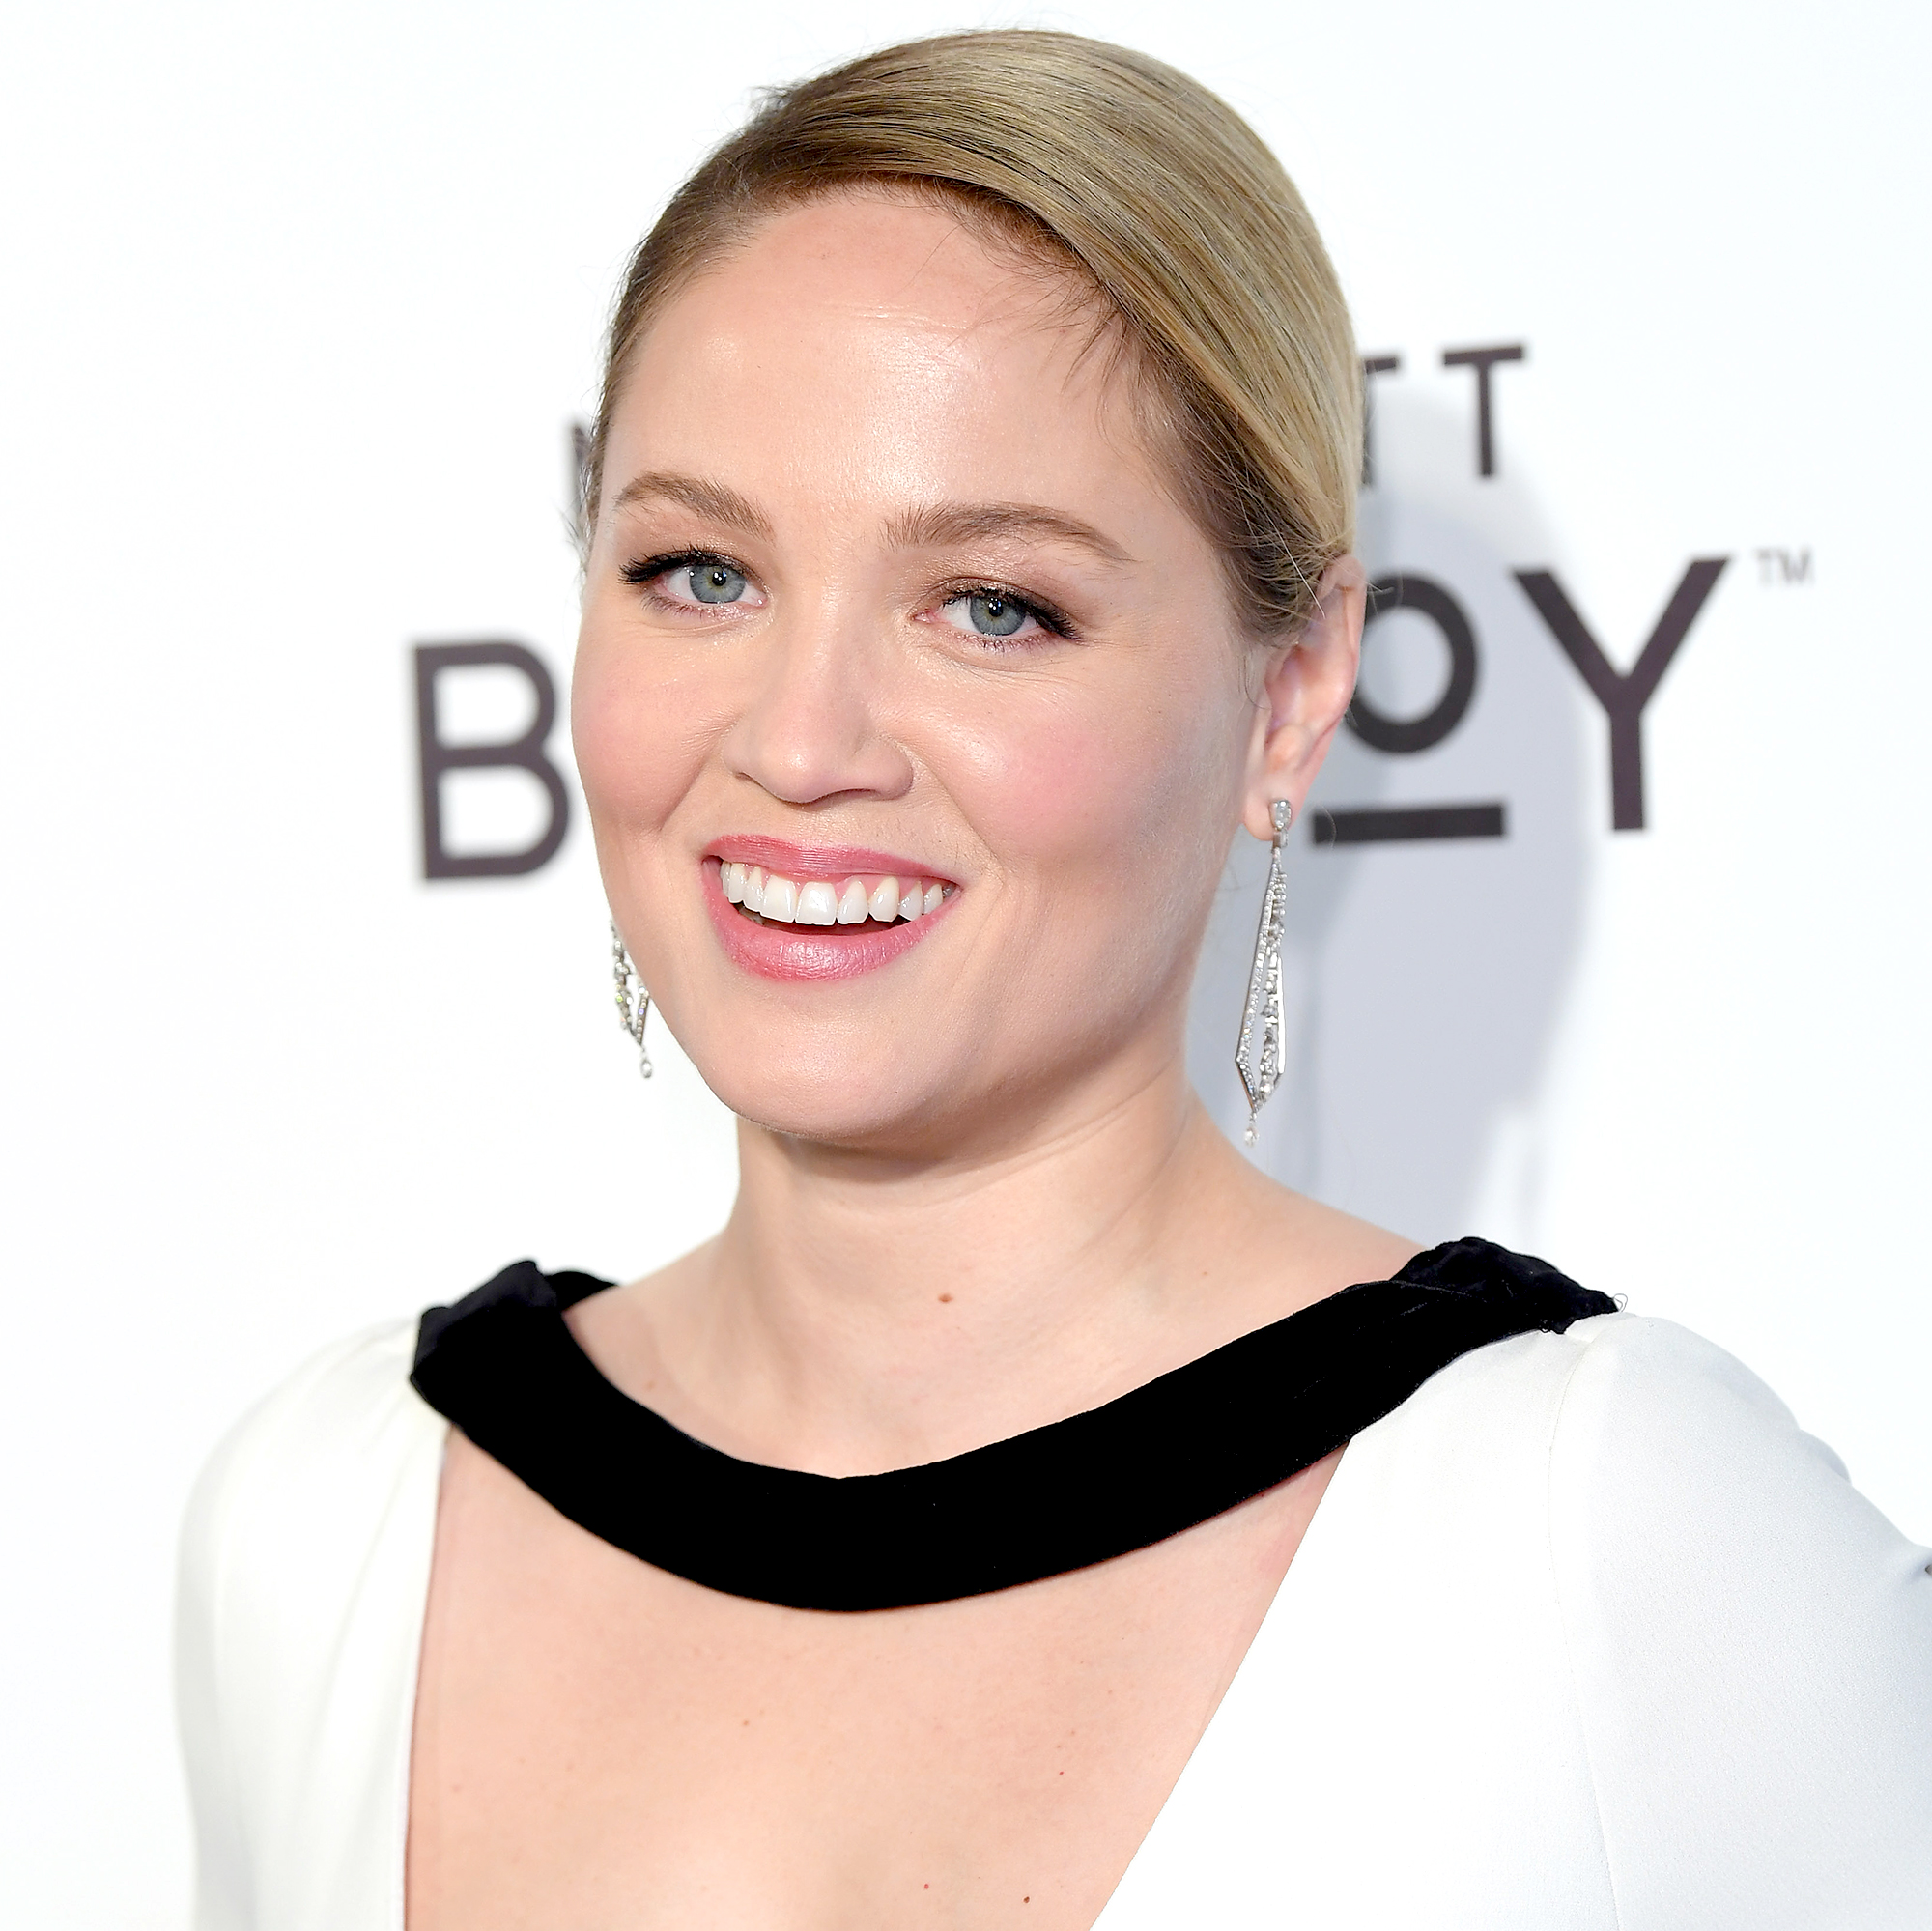 """Erika-Christensen - The Swimfan star focused on the positive, writing, """"Good work, getting life back on track. Jesus, it makes me cry."""""""